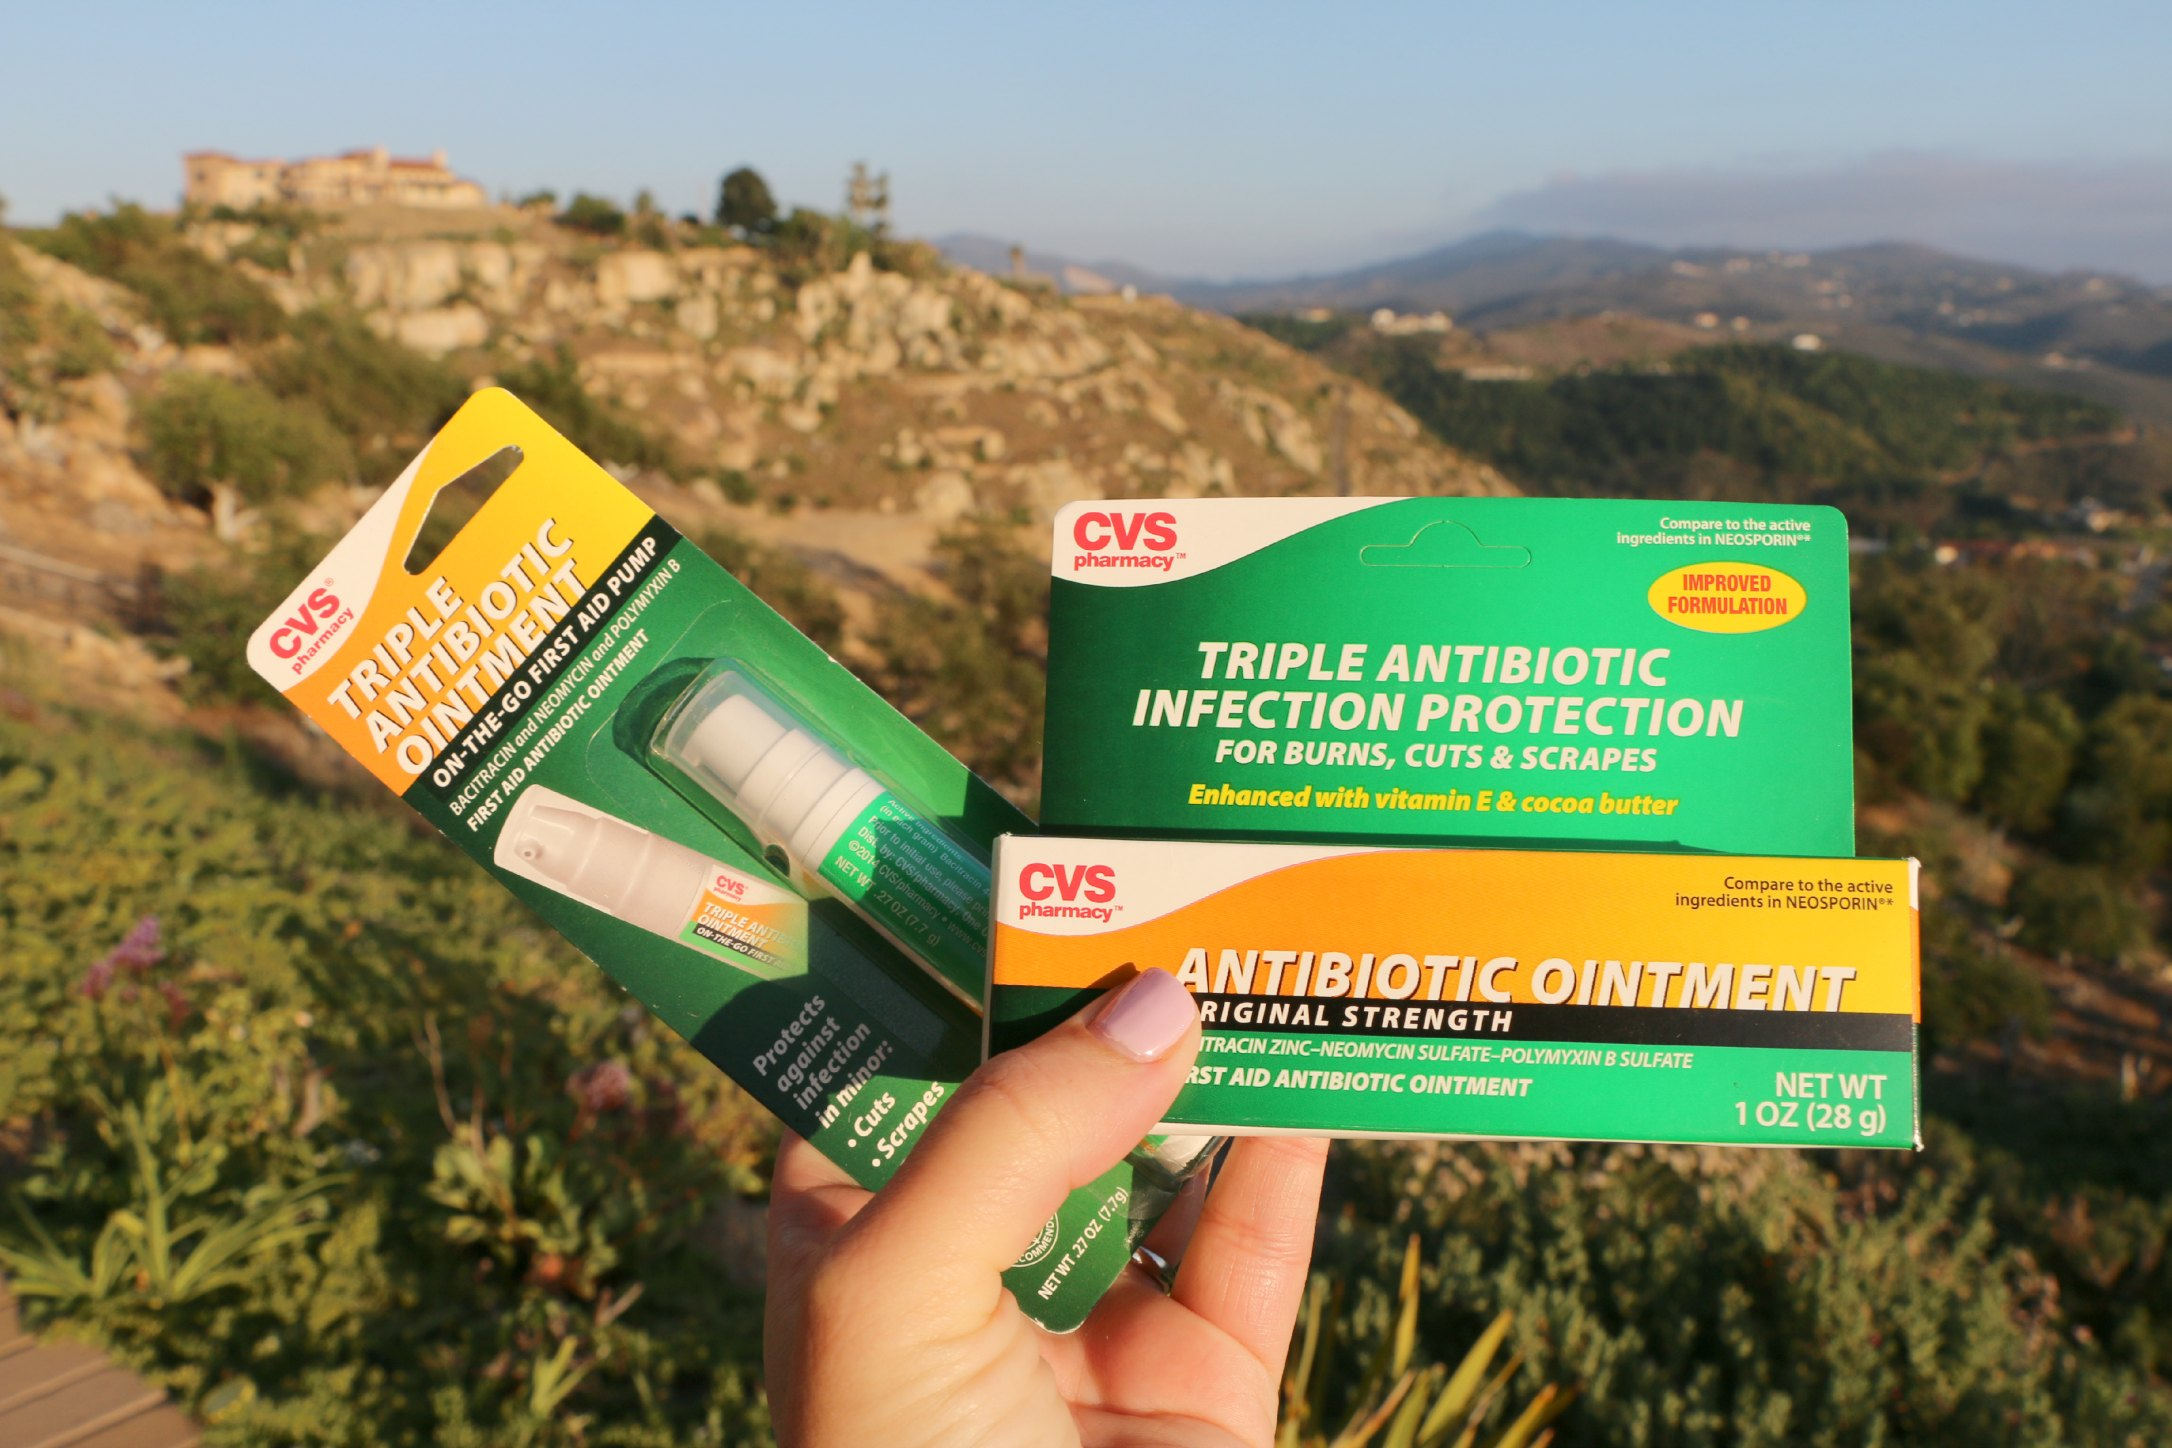 cvs antibiotic ointment